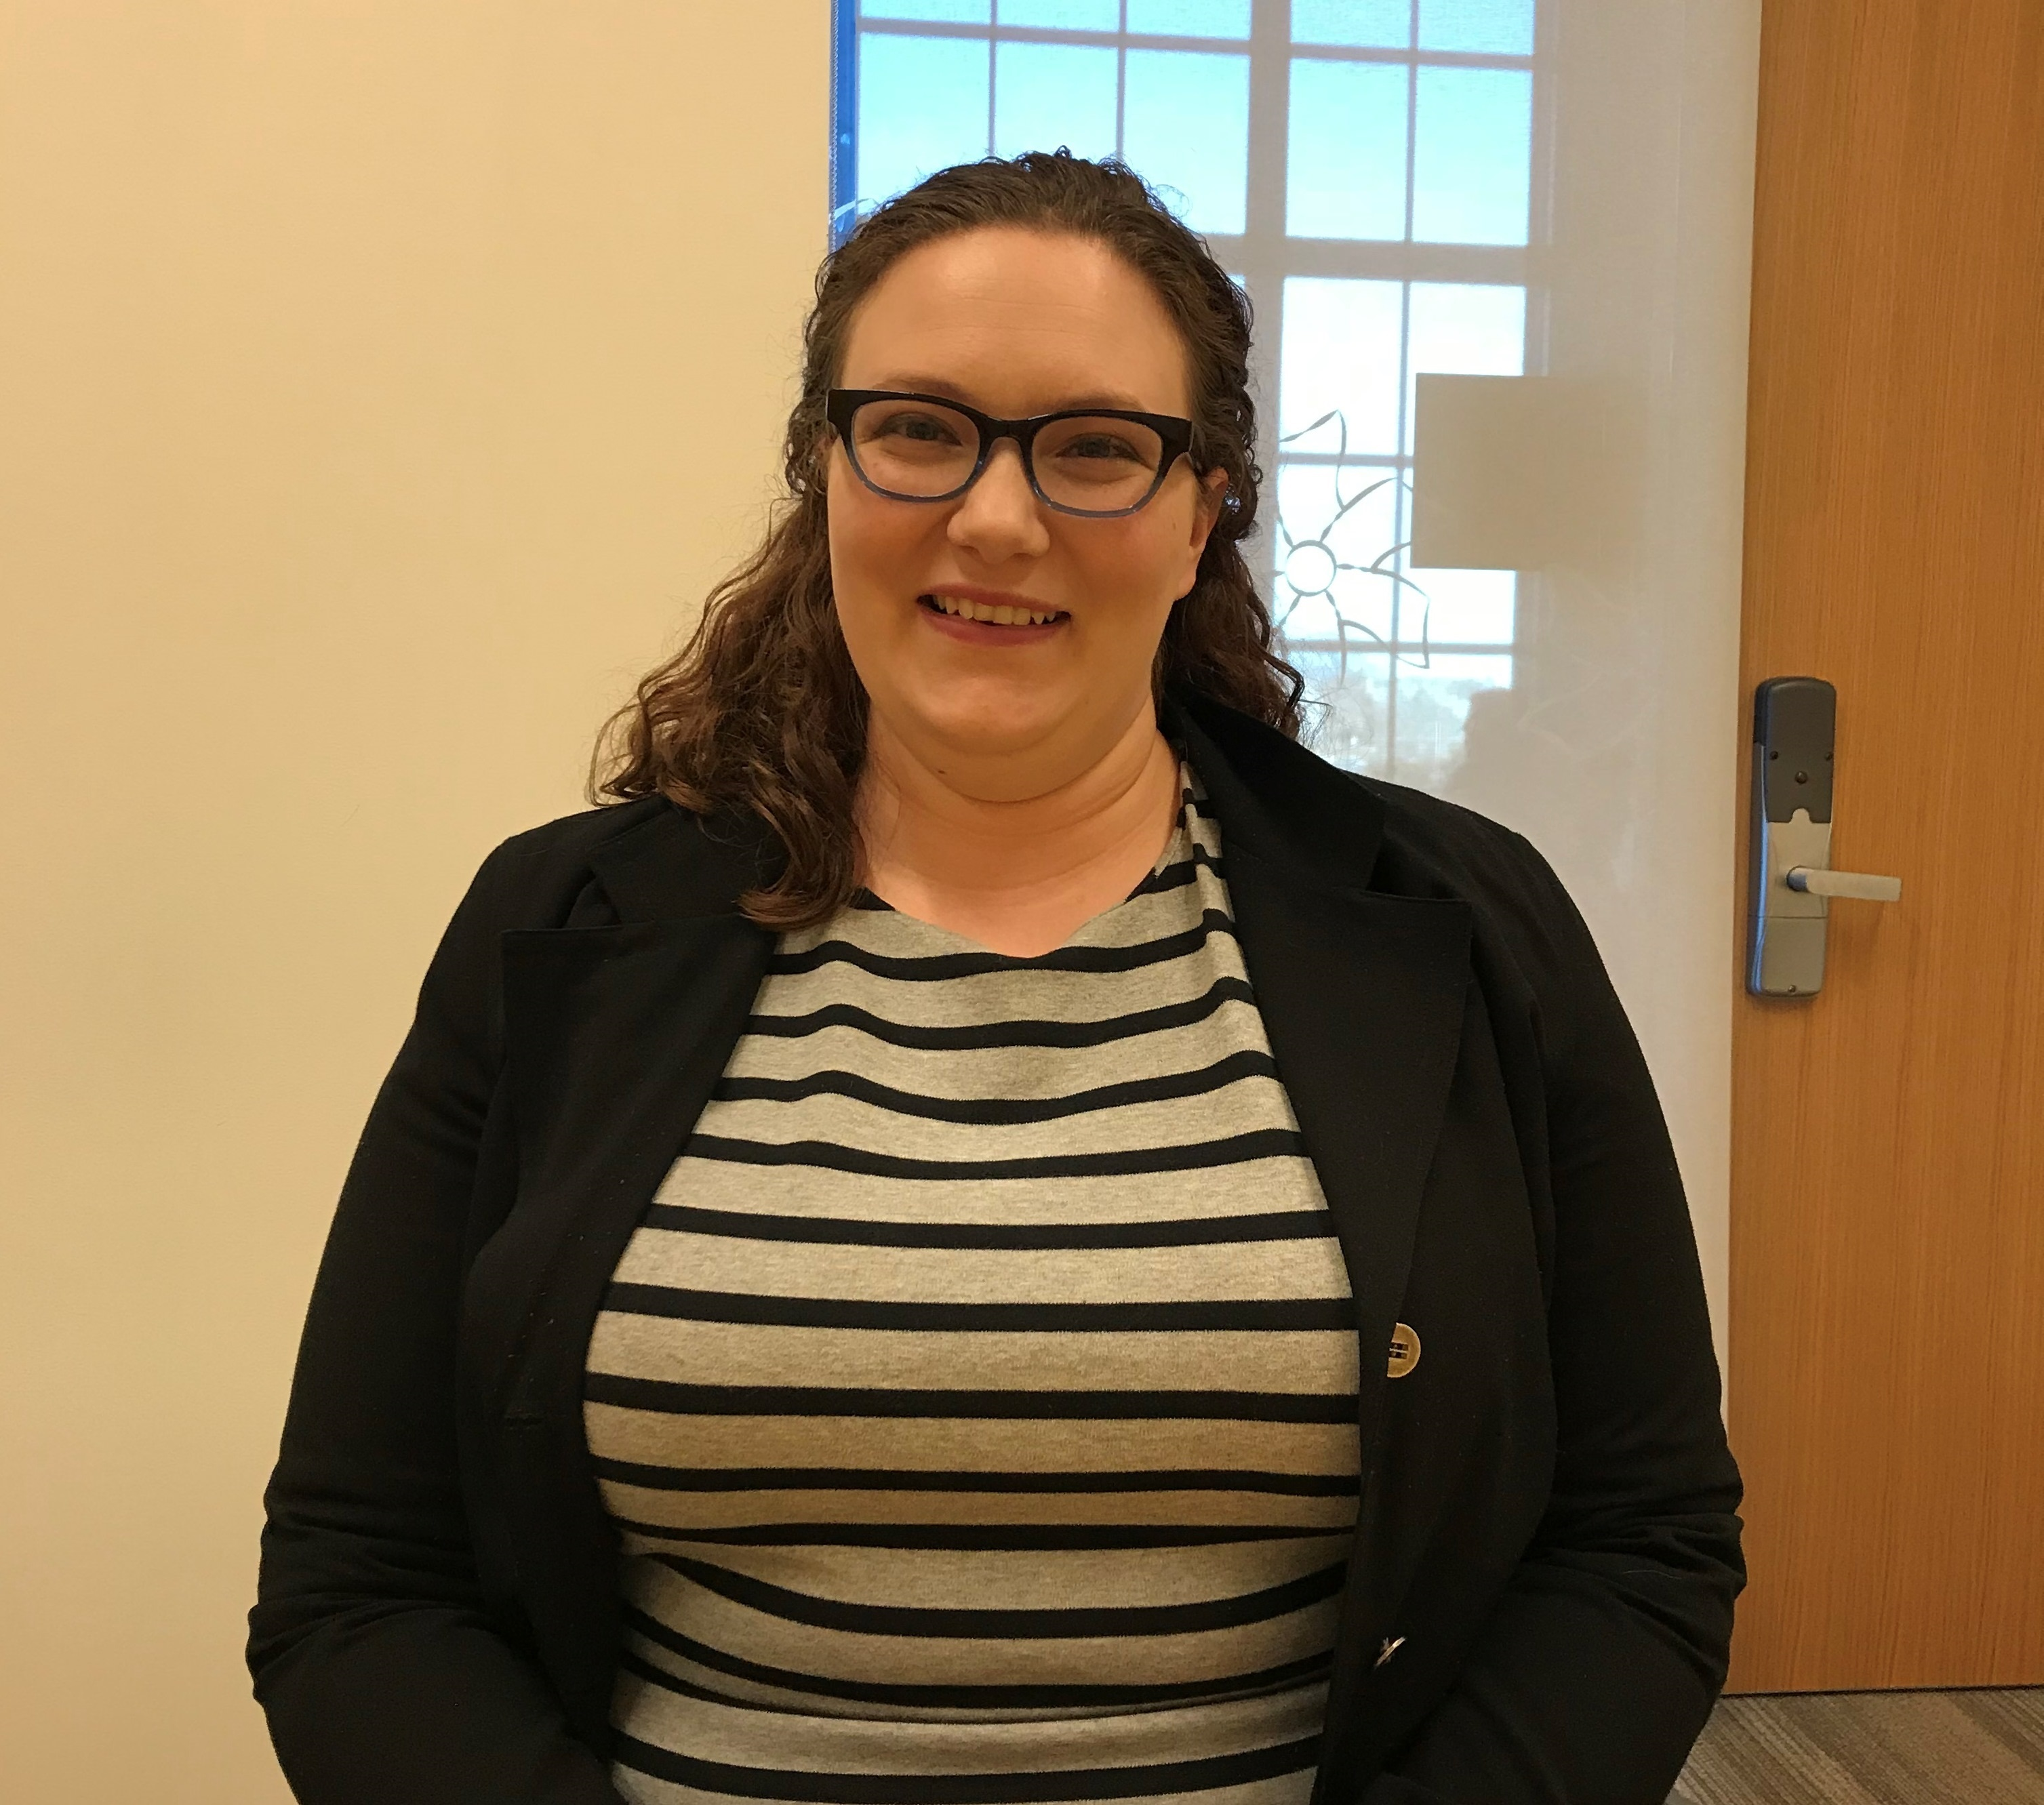 Olive Swinski is a Master's student at Rhode Island College. She works with a peer mentoring group called